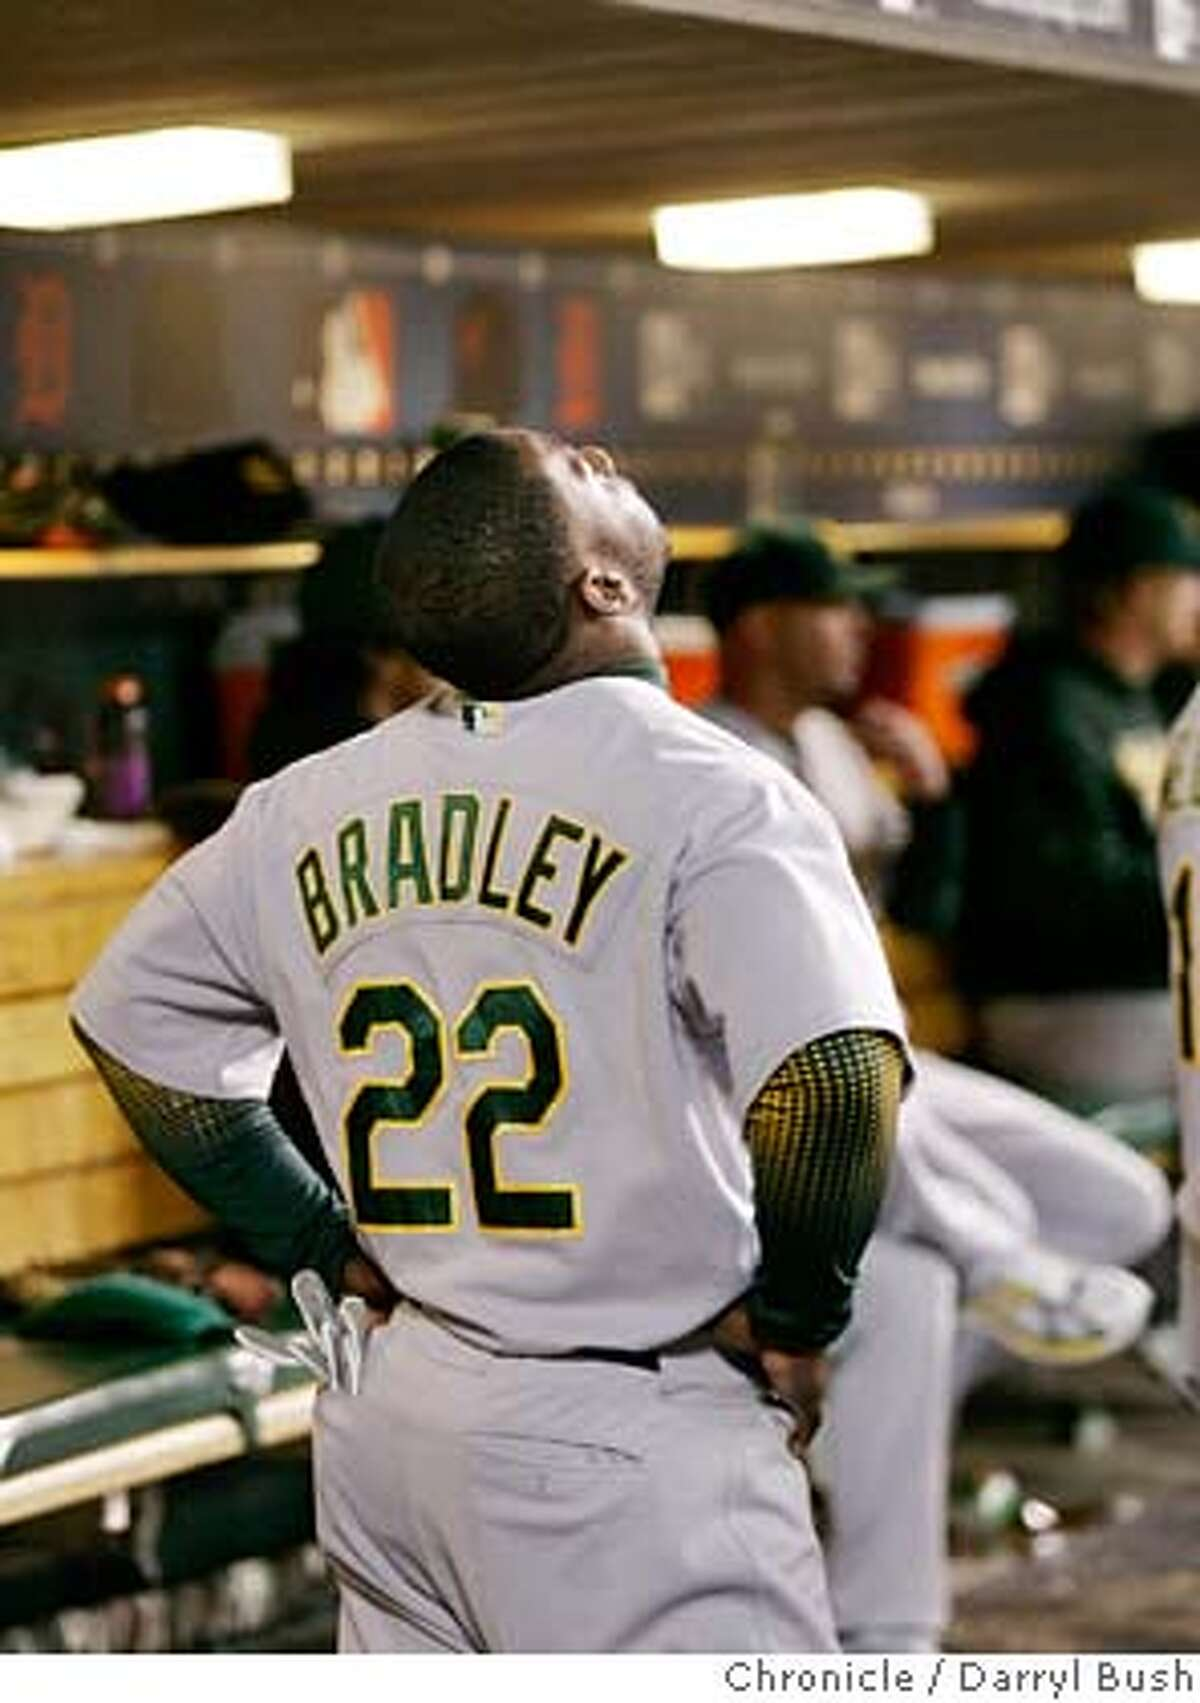 Athletics_0001_db.JPG Oakland Athletics Milton Bradley reacts to making an out in the dugout after hitting a long fly ball out in the 9th inning vs. Detroit Tigers in the 4th game of ALCS, at Comerica Park in Detroit, MI, on Saturday, October 14, 2006. The A's lost game and the series 4-0. 10/14/06 Darryl Bush / The Chronicle ** roster (cq) Ran on: 10-15-2006 Magglio Ordo�ez provided the final heroics in the Tigers-As series, with a three-run home run in the ninth inning. Ran on: 10-15-2006 Ran on: 10-15-2006 Magglio Ordo�ez provided the final heroics in the Tigers-As series, with a three-run home run in the ninth inning. Ran on: 10-15-2006 Magglio Ordo�ez provided the final heroics in the Tigers-As series, with a three-run home run in the ninth inning. MANDATORY CREDIT FOR PHOTOG AND SF CHRONICLE/NO SALES-MAGS OUT